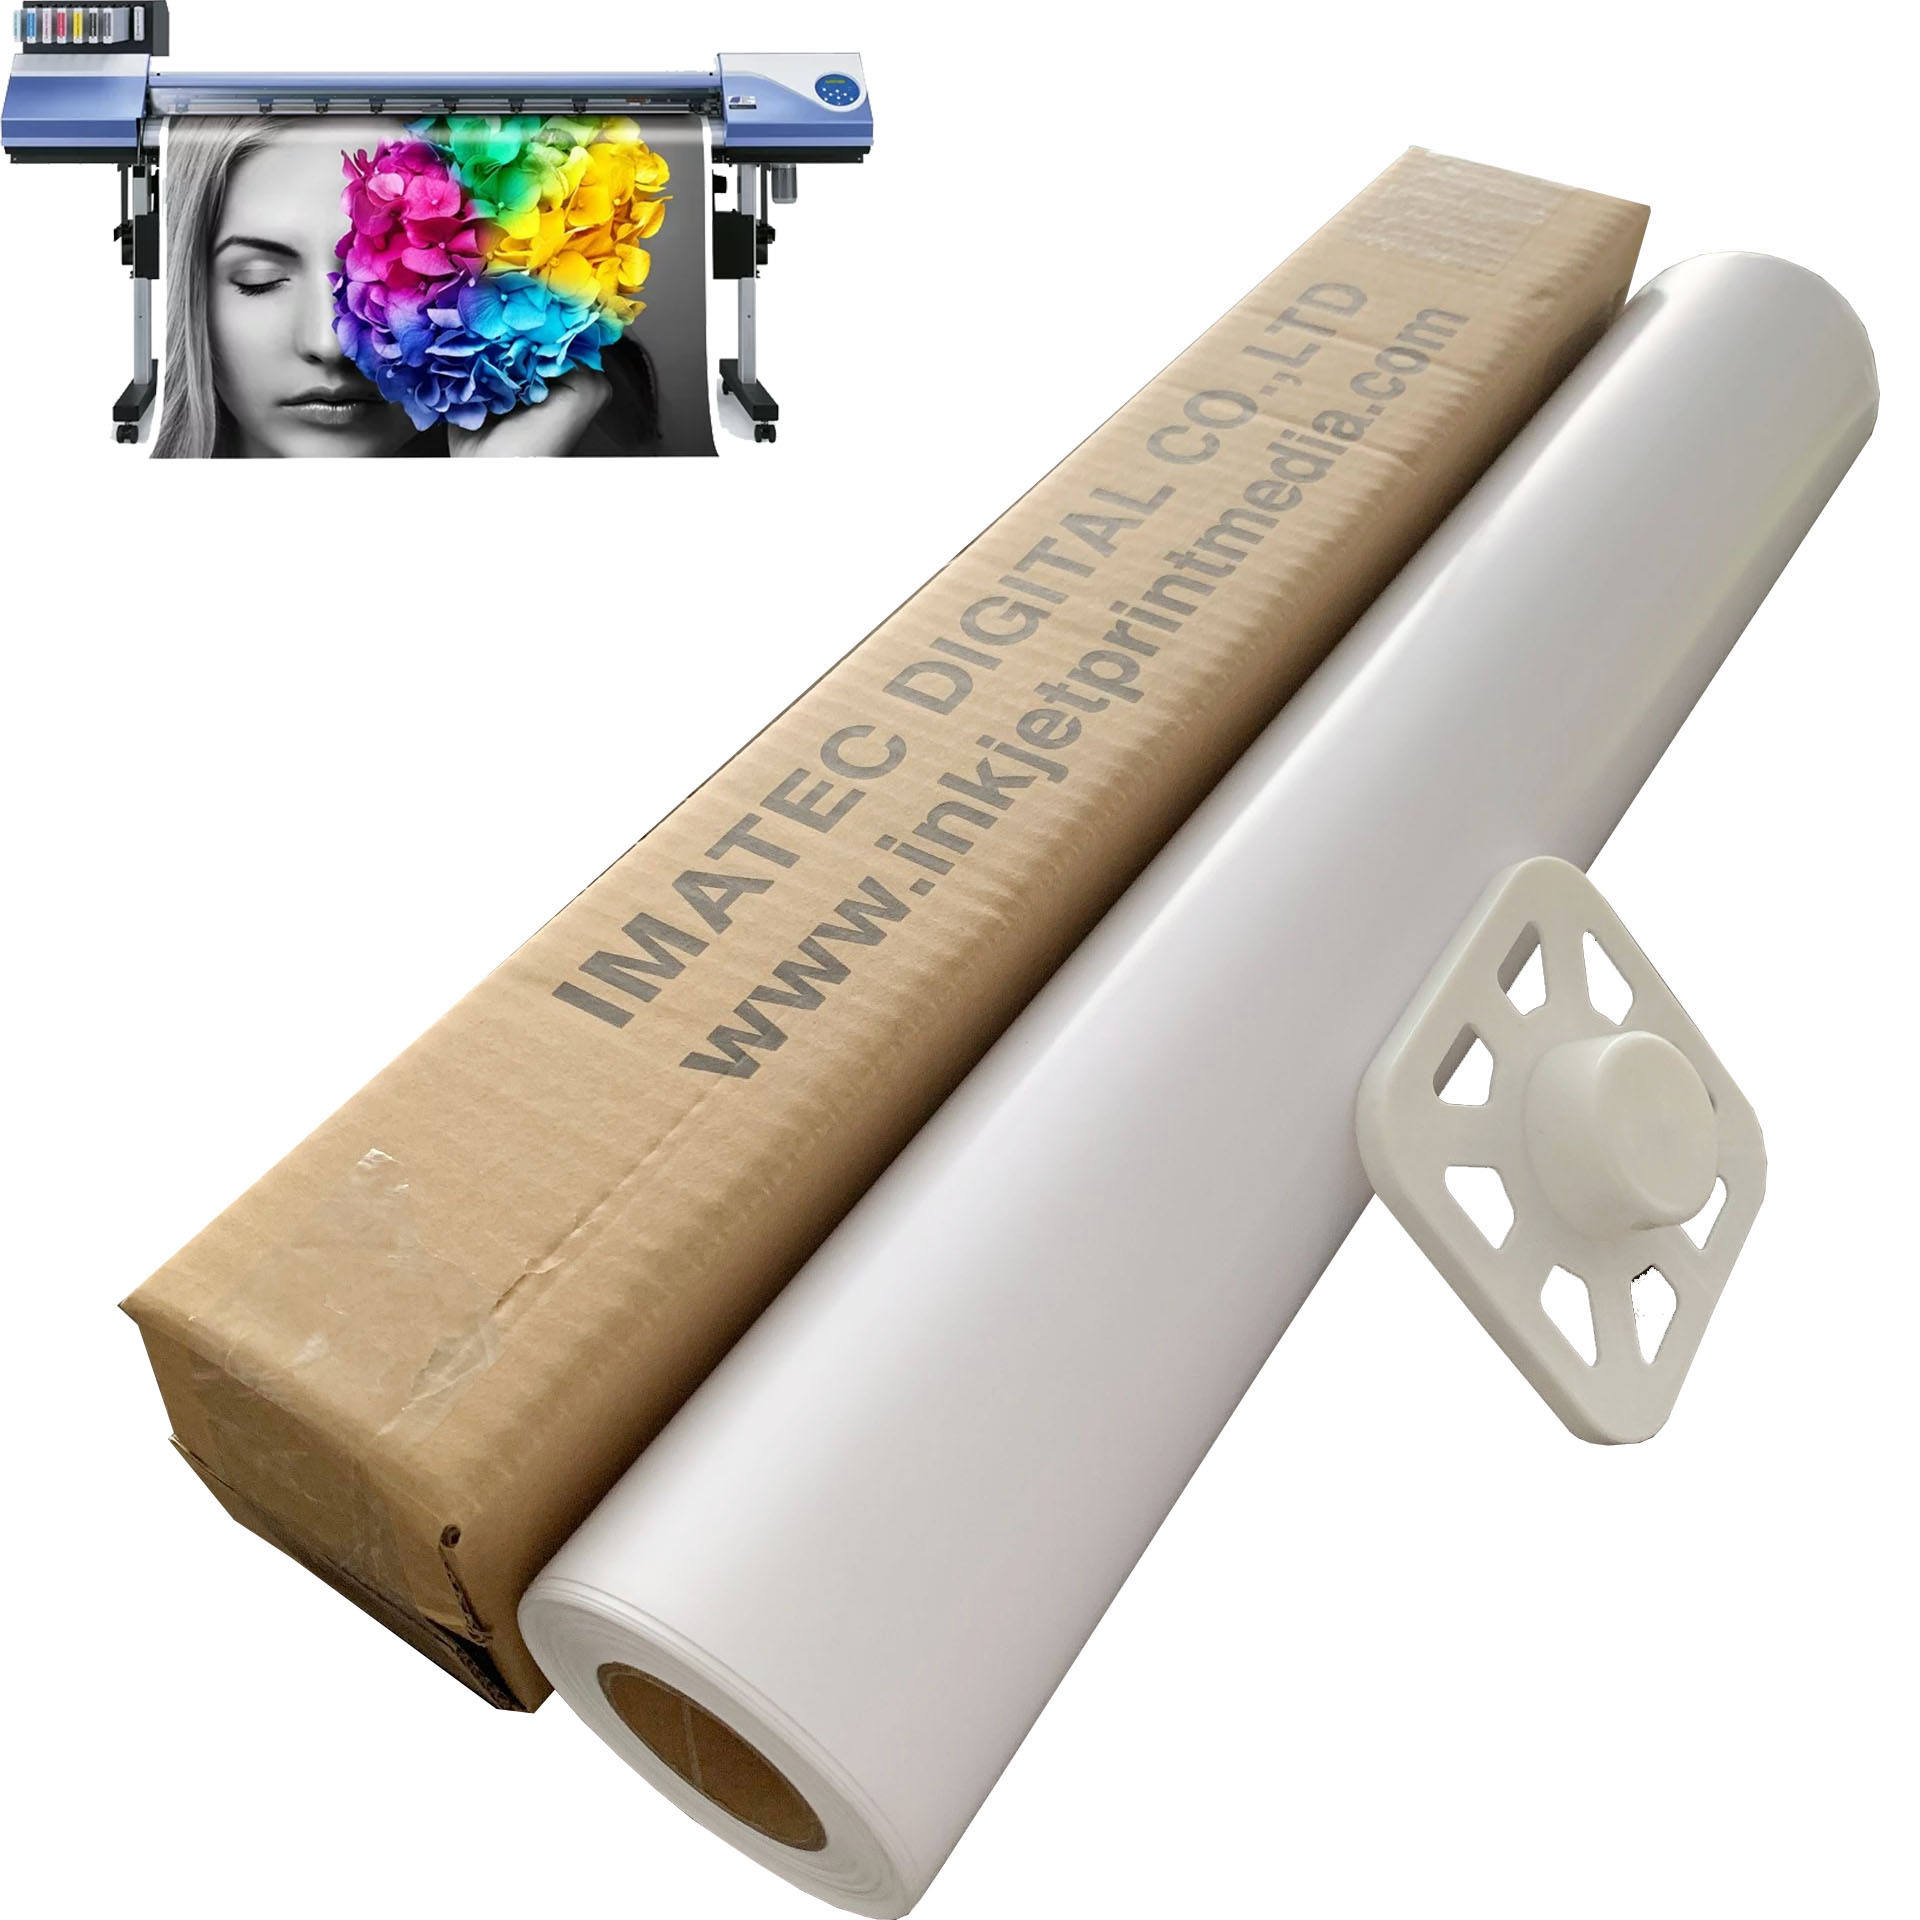 Inkjet RC high glossy photo paper roll for Canon/Epson/HP printing